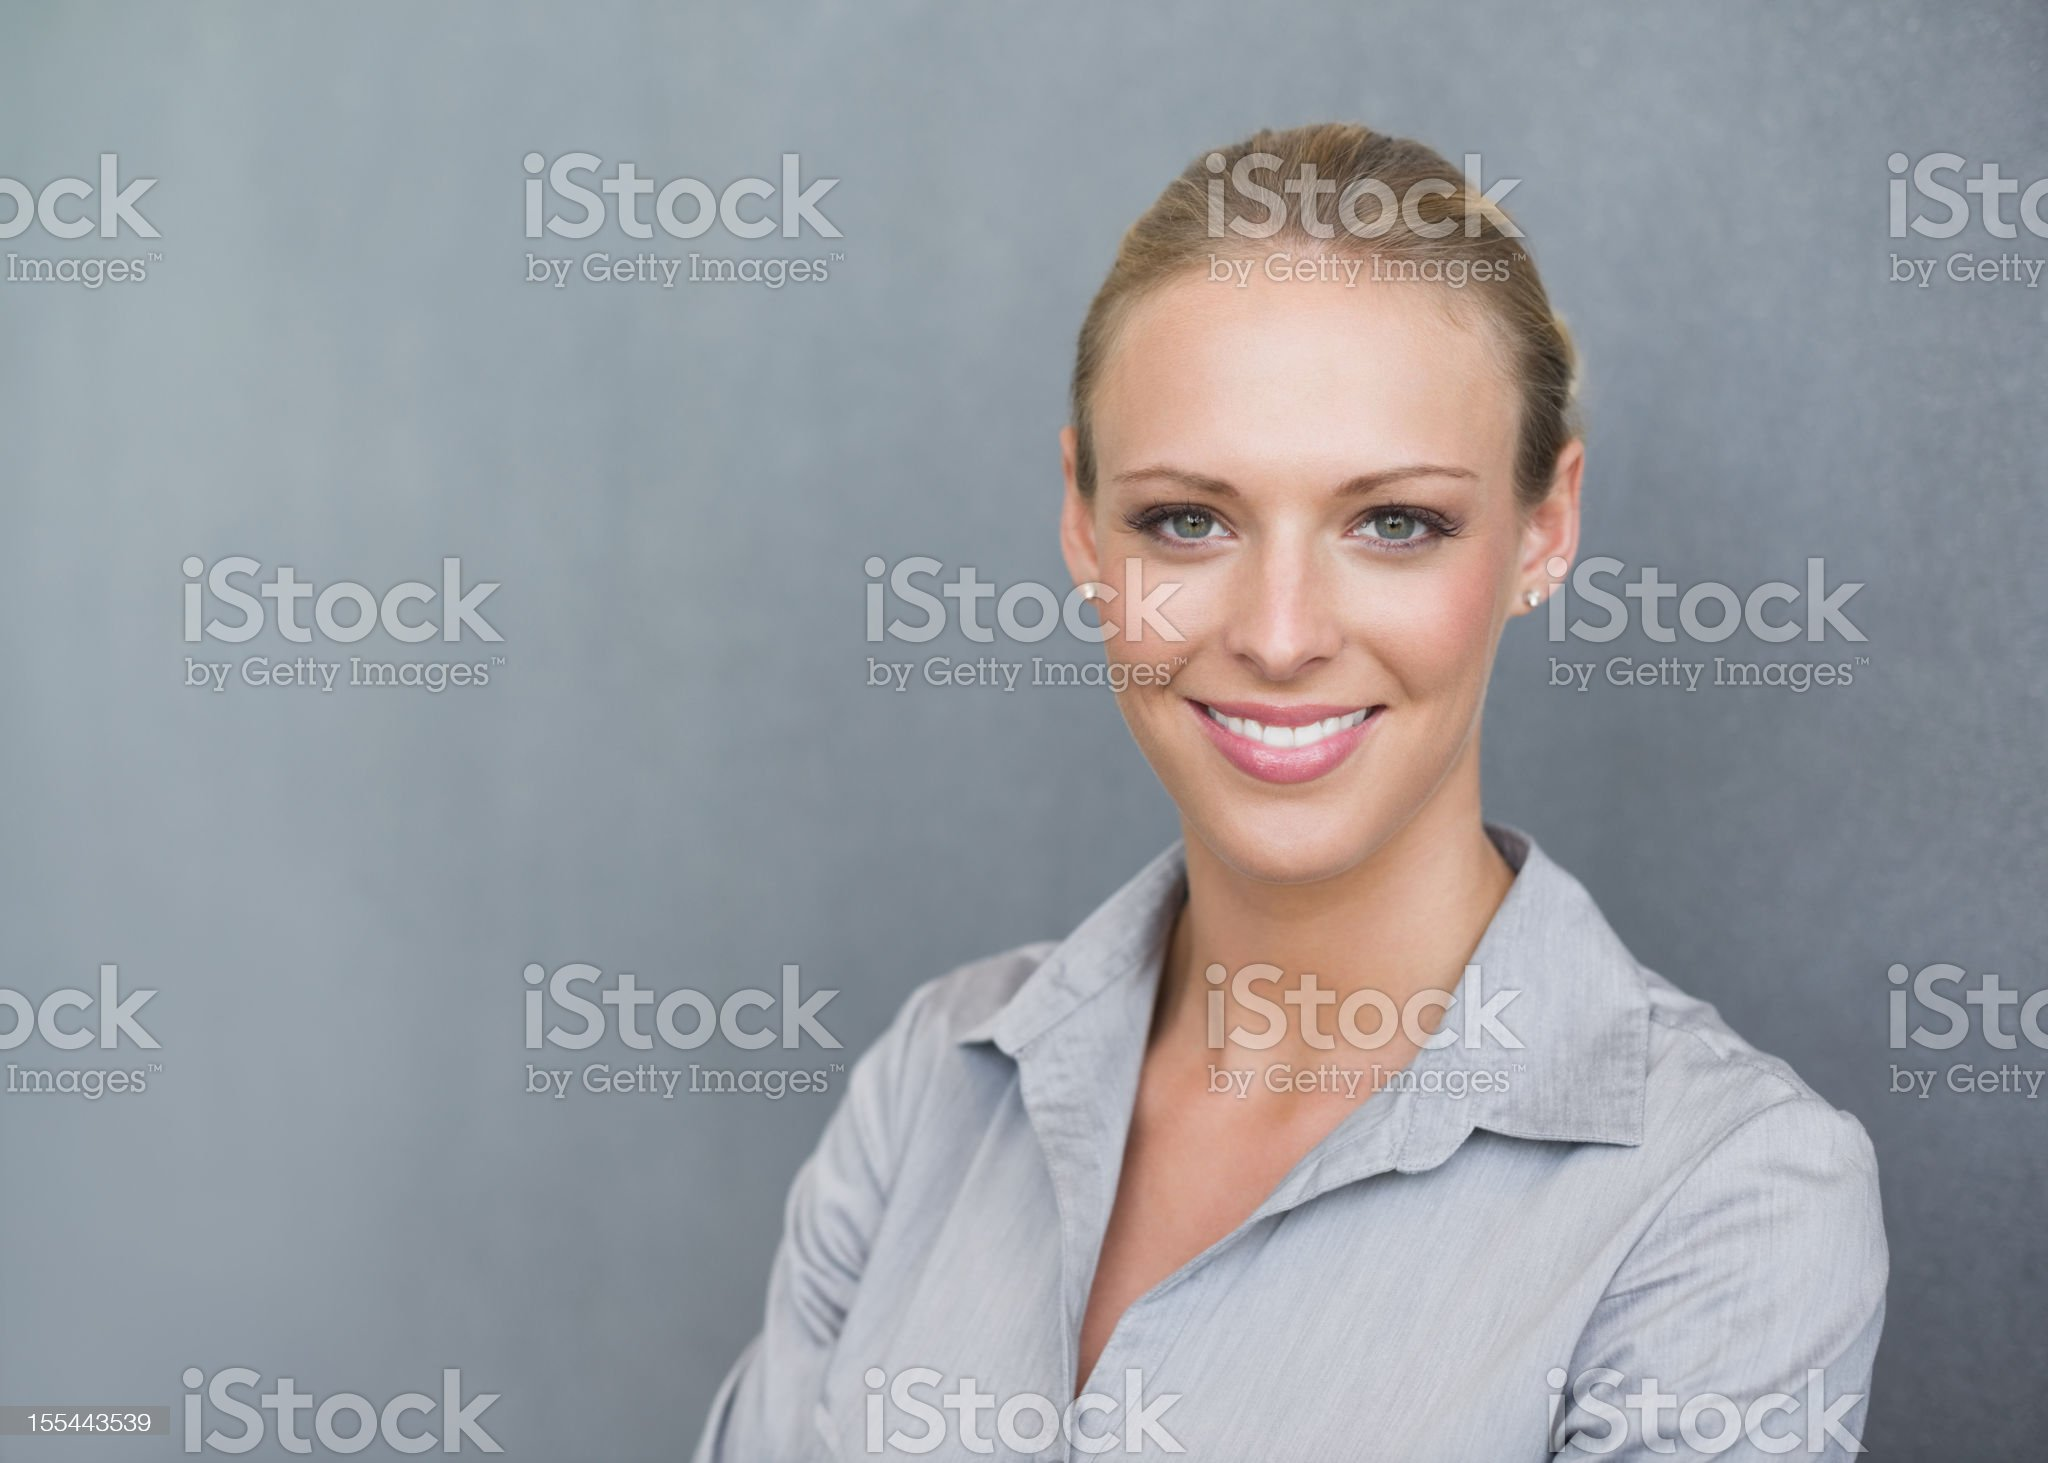 Beautiful Female Professional Smiling royalty-free stock photo